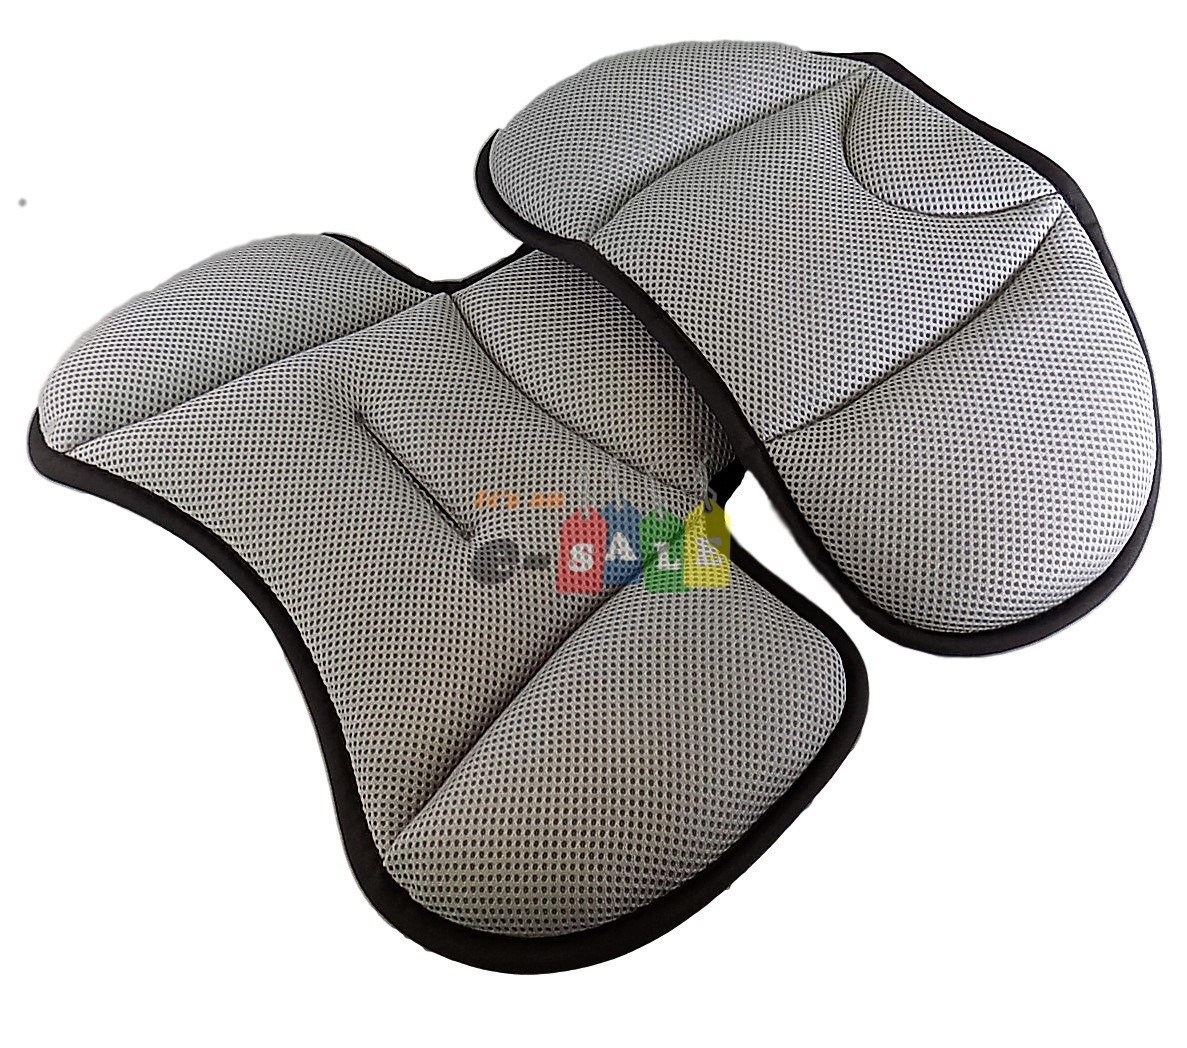 Replacement Head and Body Insert Pads for Chicco Keyfit Or Keyfit 30 Infant Car Seat. Make Your car seat Look Nice and Clean with The Inserts for The New Baby. These Inserts are Compatible with All K 12071015647